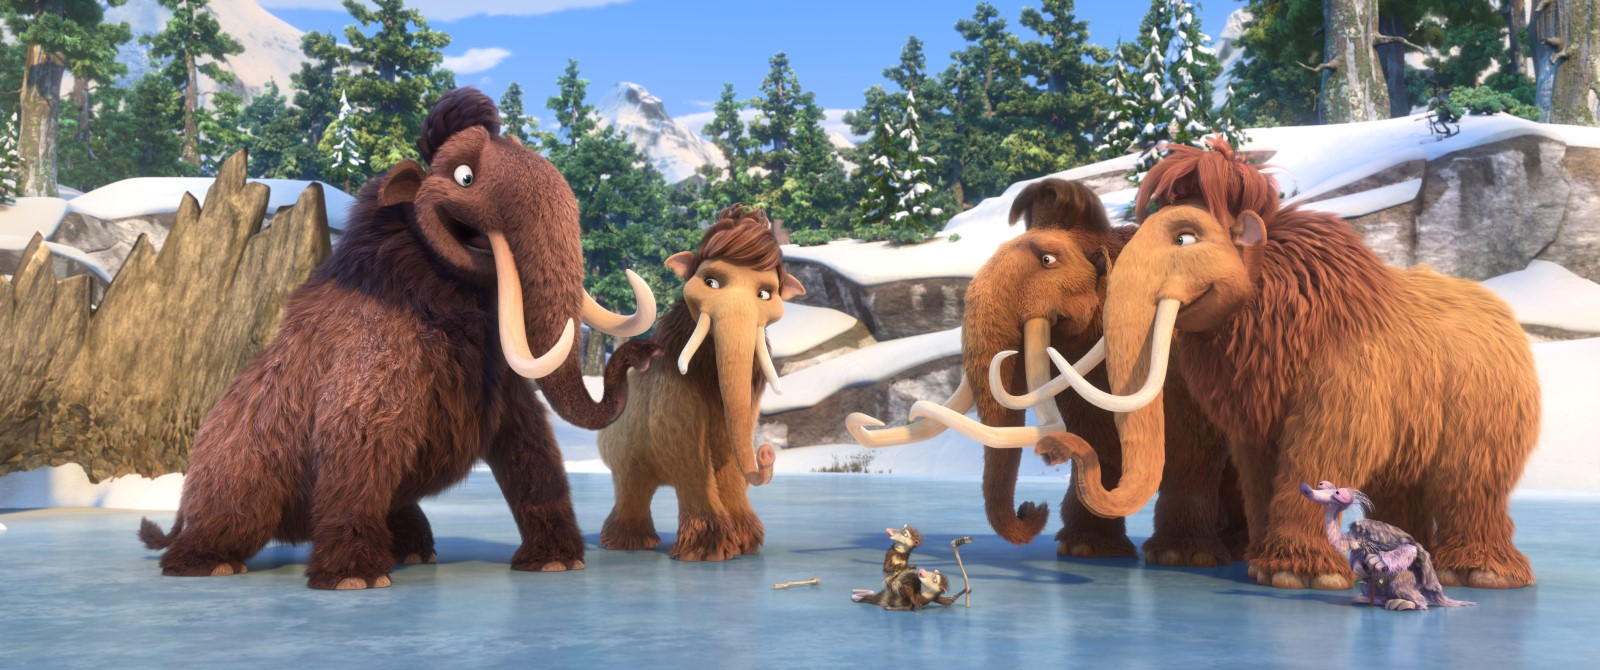 L'ÂGE DE GLACE LES LOIS DE L'UNIVERS - Image 19 du film Saga Ice Age 2016 Blue Sky Scrat Sid Mango - Go with the Blog